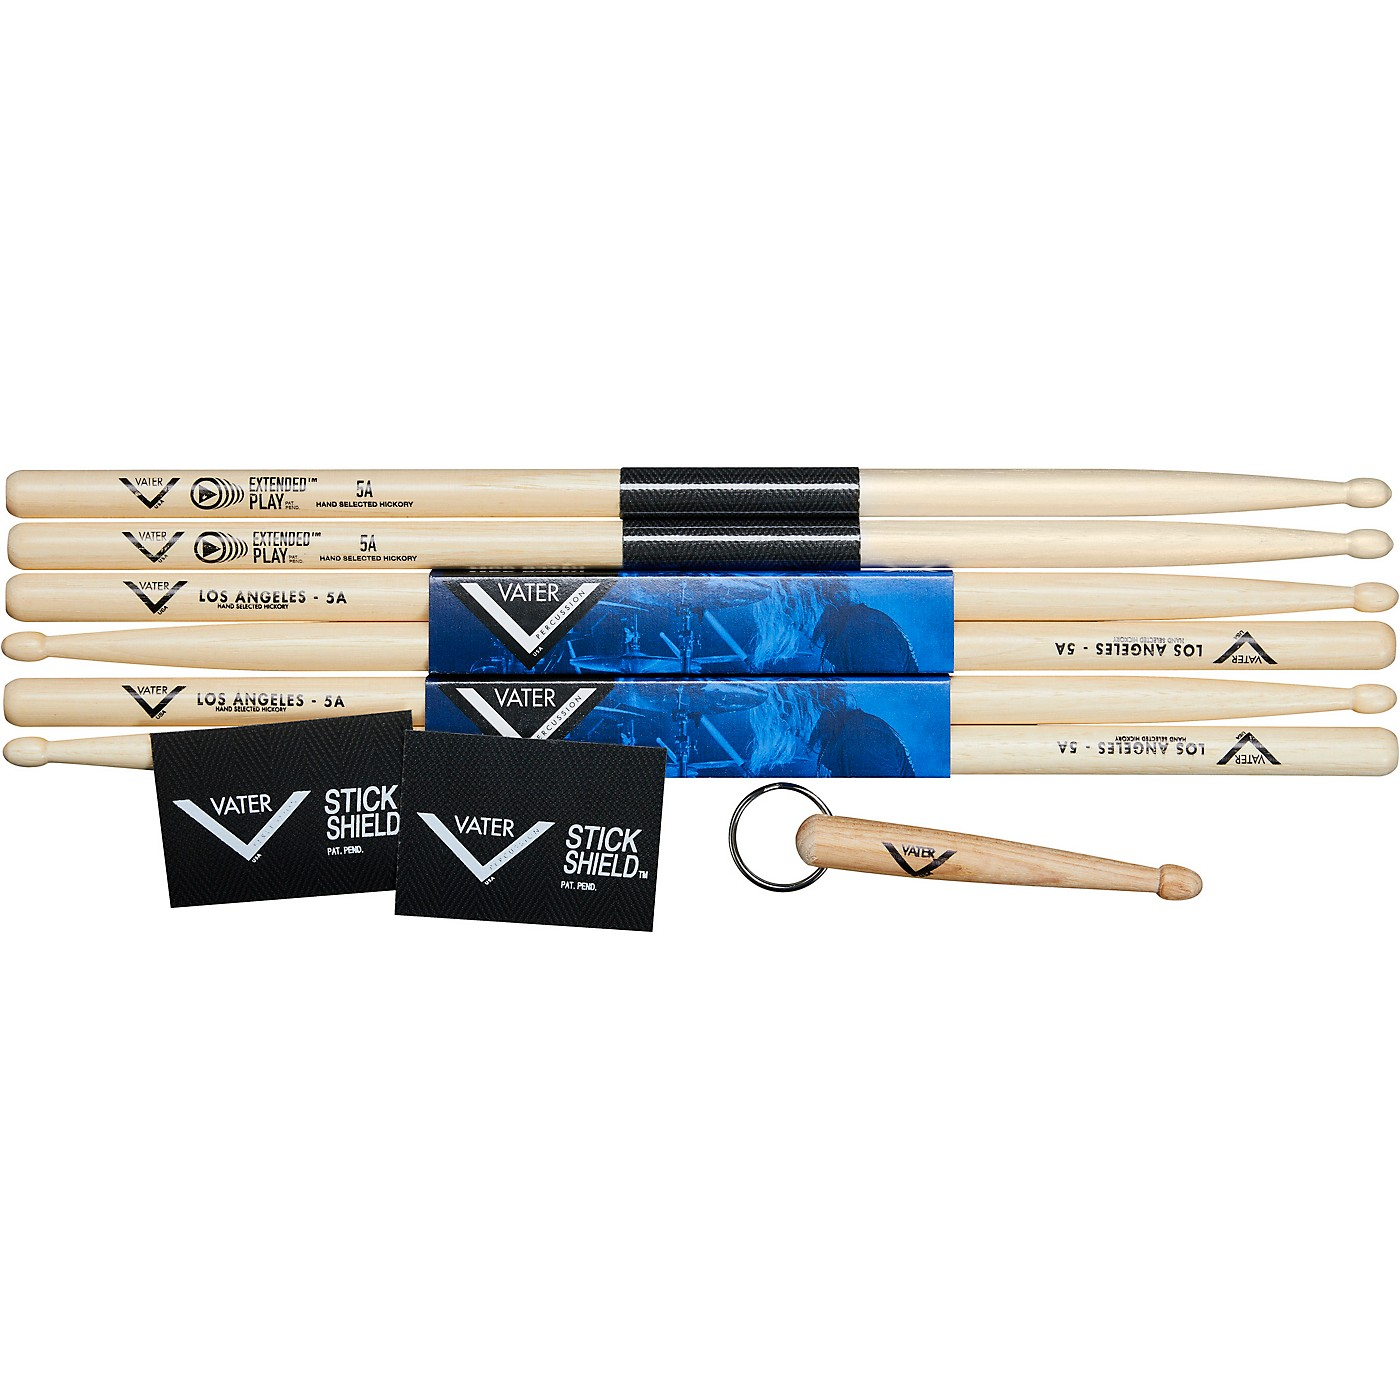 Vater Buy 2 pair 5A Wood and 1 Pair Extended Play 5A wood, get 1 pair Stick Shield and 1 Vater Key Chain thumbnail